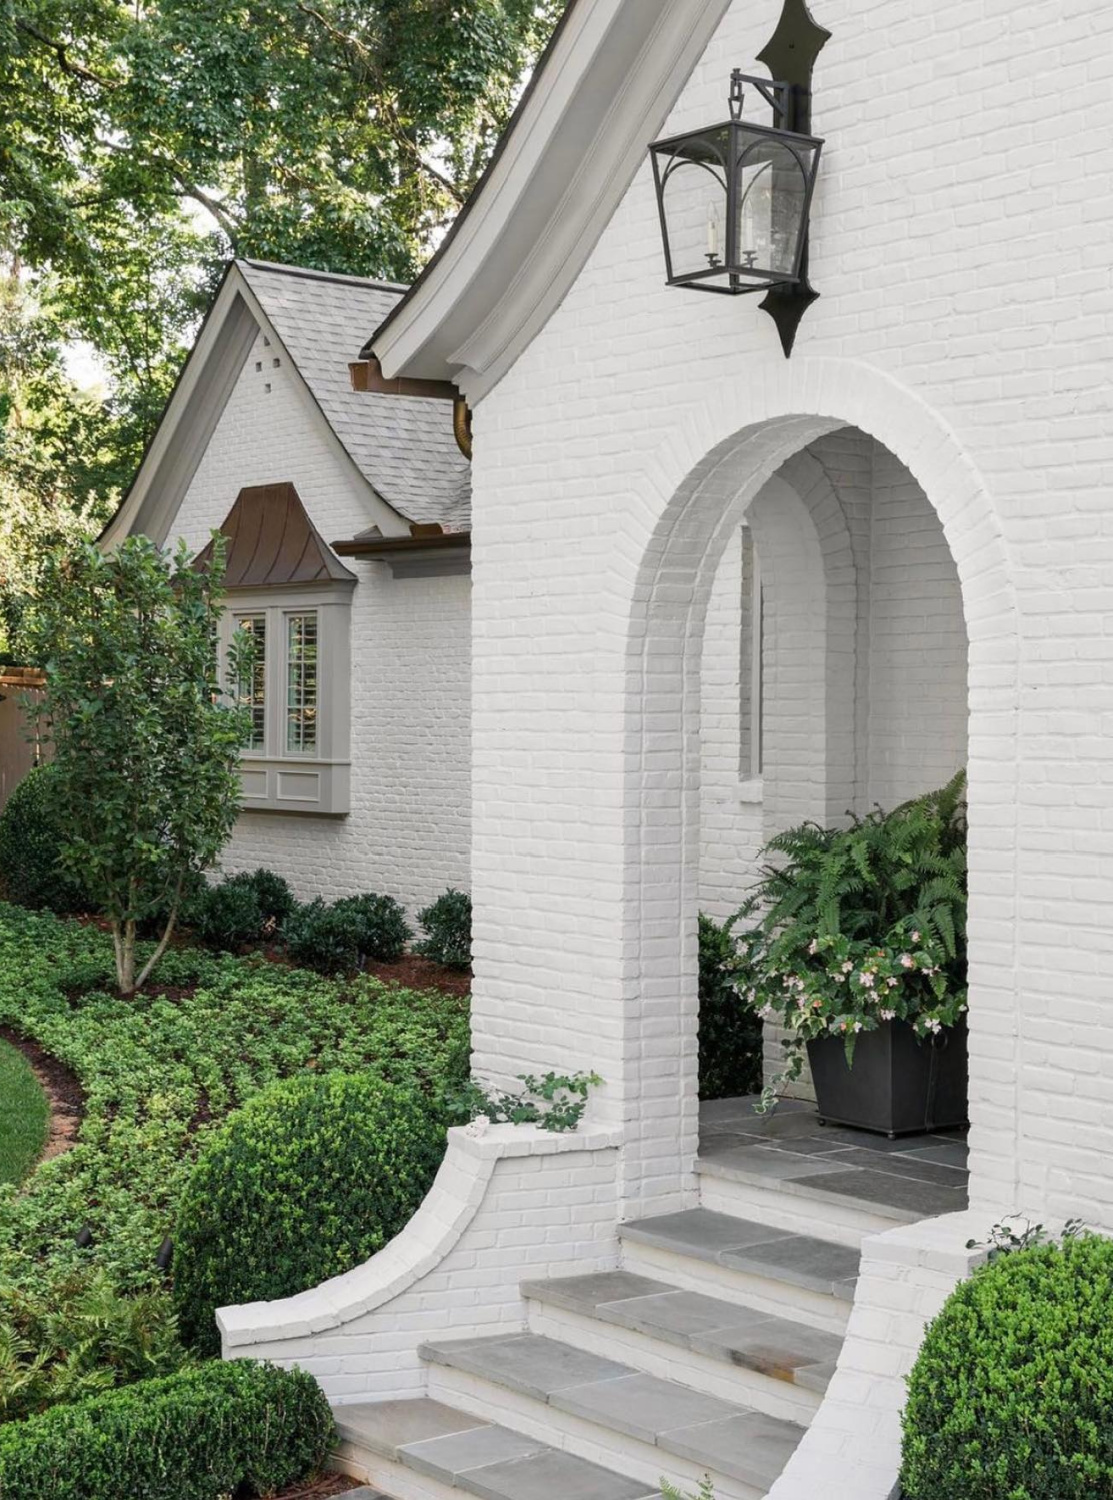 Balboa Mist (Benjamin Moore) on brick exterior of a lovely home with arches (Ladisic Fine Homes) - Sherry Hart. #balboamist #benjaminmoorebalboamist #paintcolors #housecolors